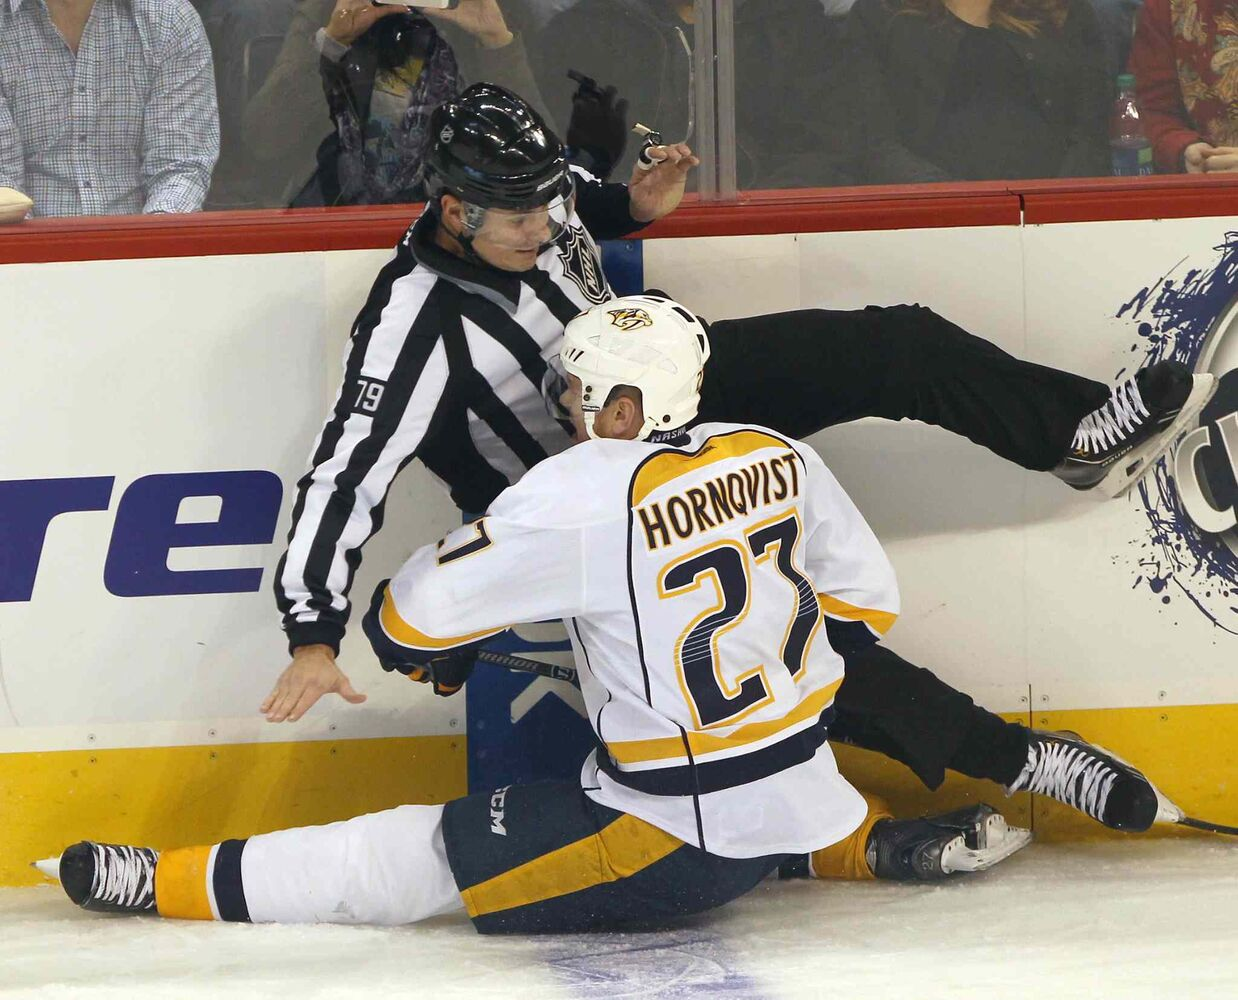 Nashville Predators forward Patric Hornqvist is tangled up with referee Kiel Murchison during the first period.